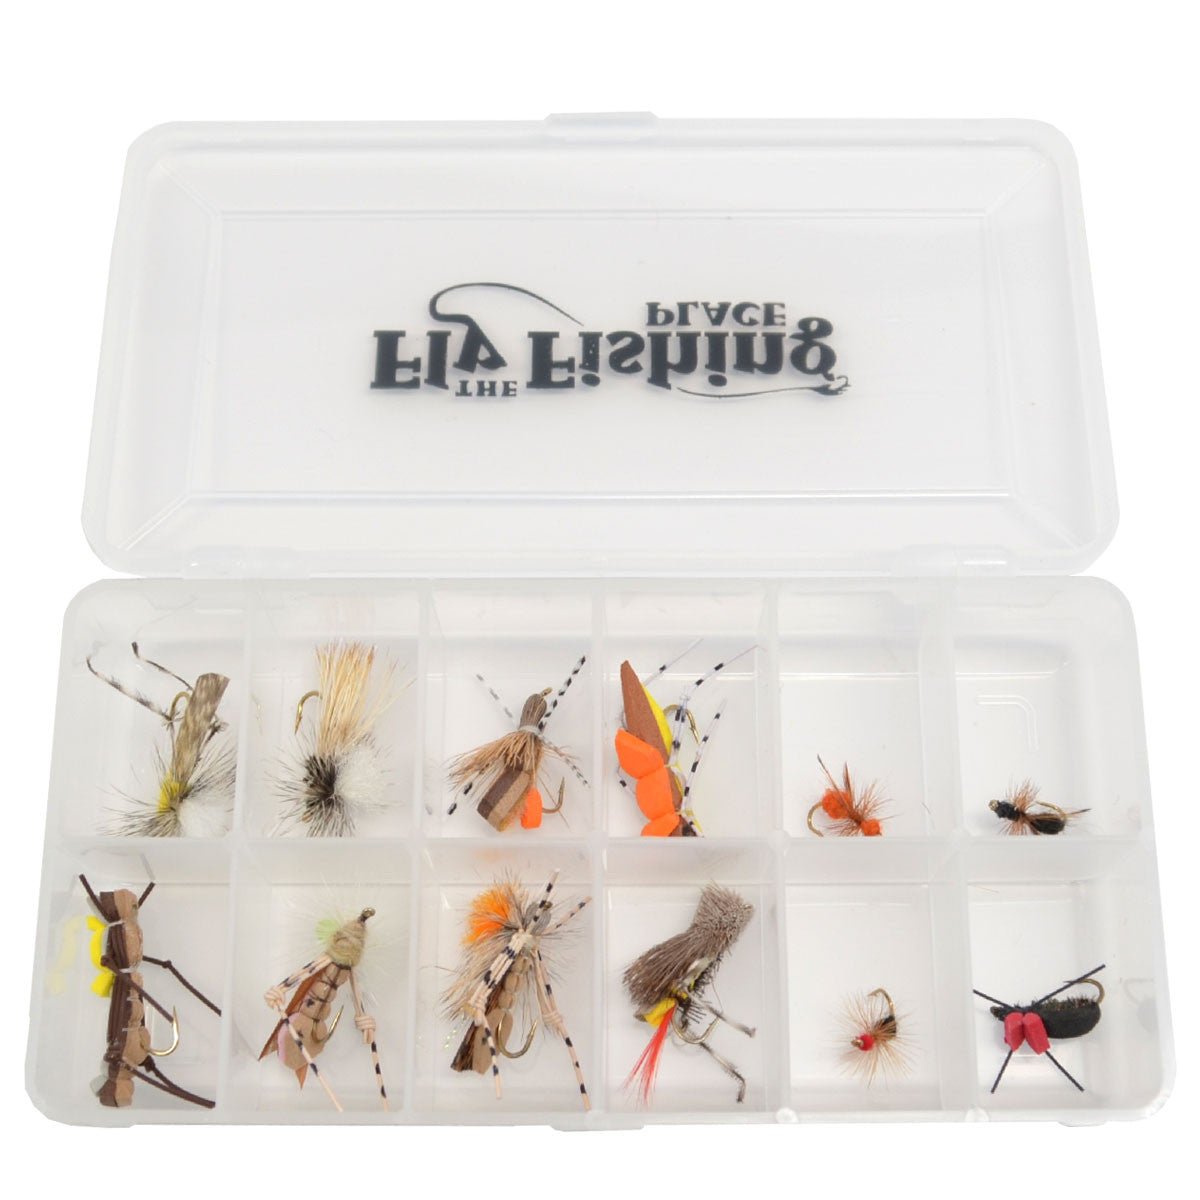 Trout Fly Assortment - Essential Terrestrials Fly Fishing Flies Collection - Includes Foam Hoppers, Ants, Beetles, and Cicadas - 1 Dozen Trout Flies with Fly Box